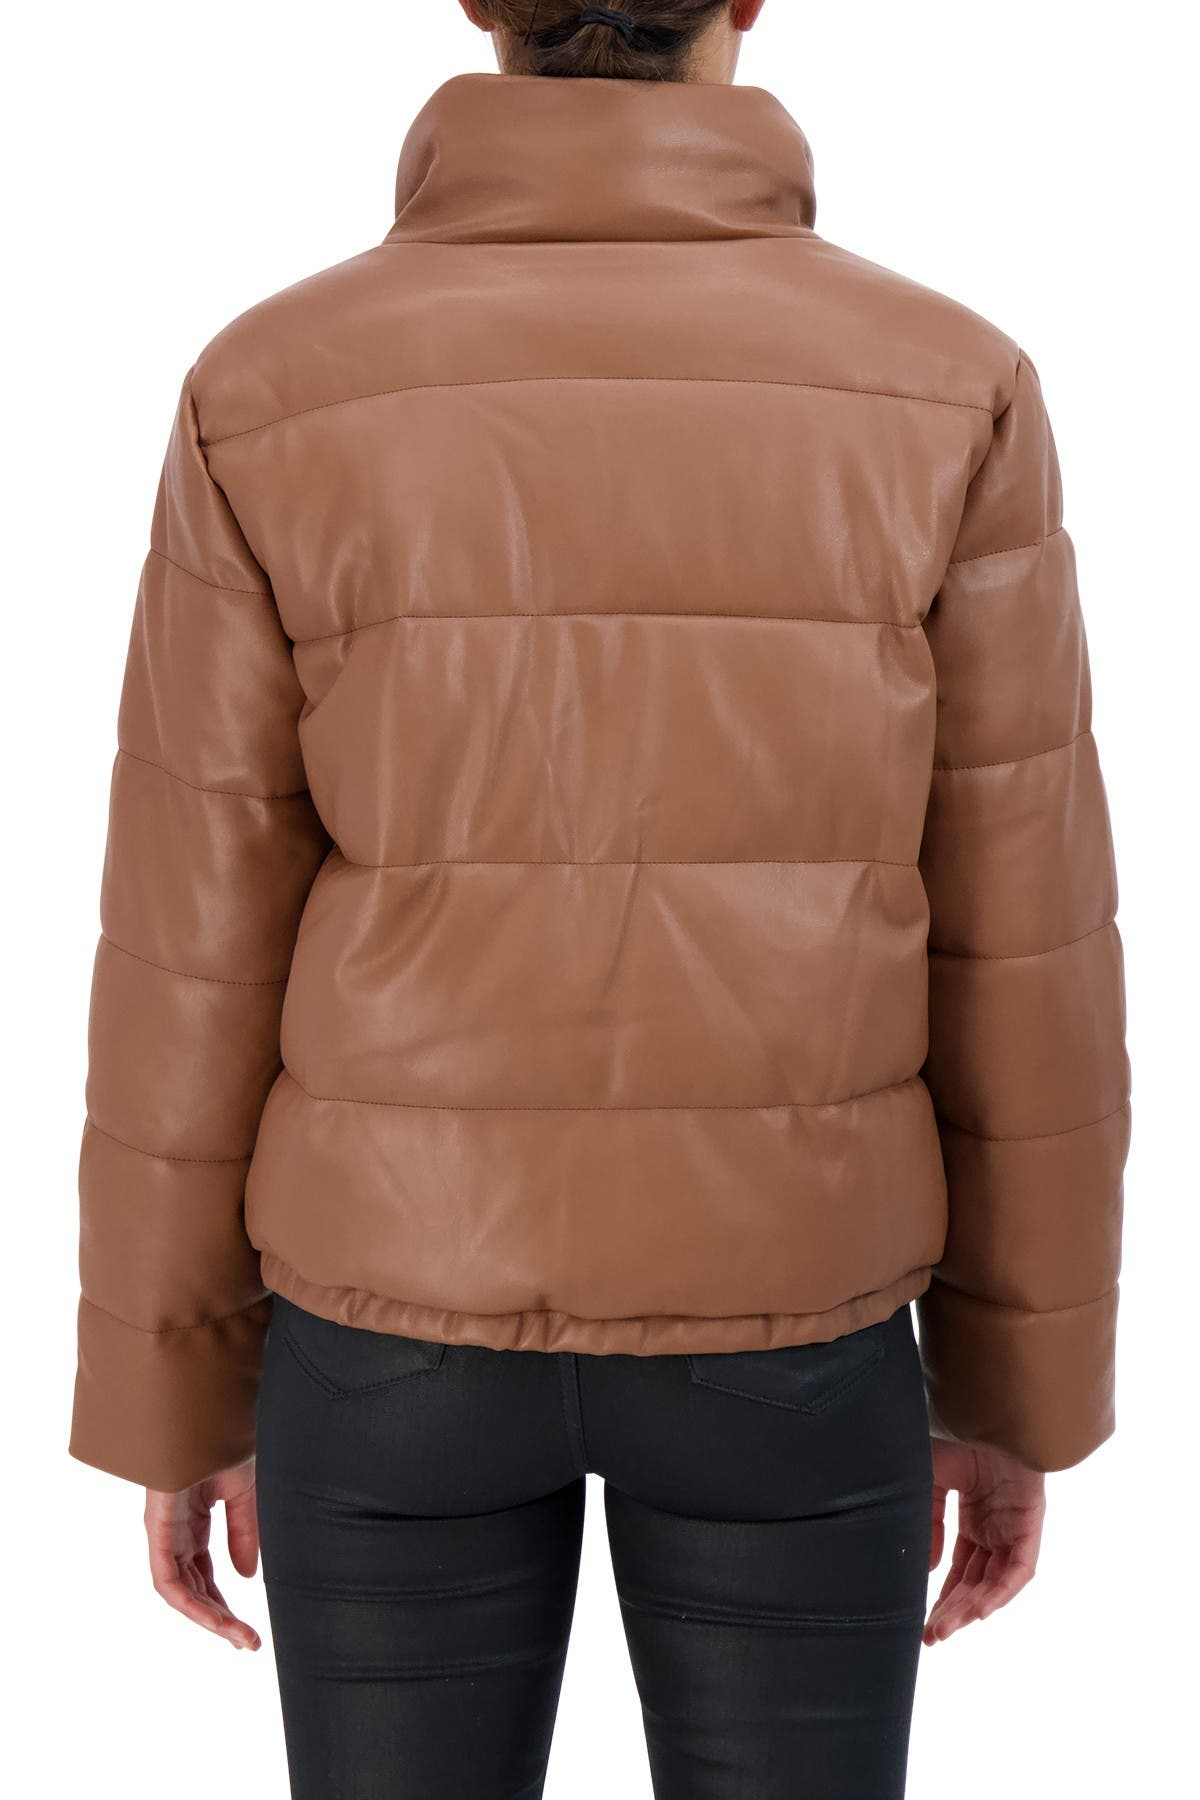 Sebby Collection Faux Leather Puffer Jacket